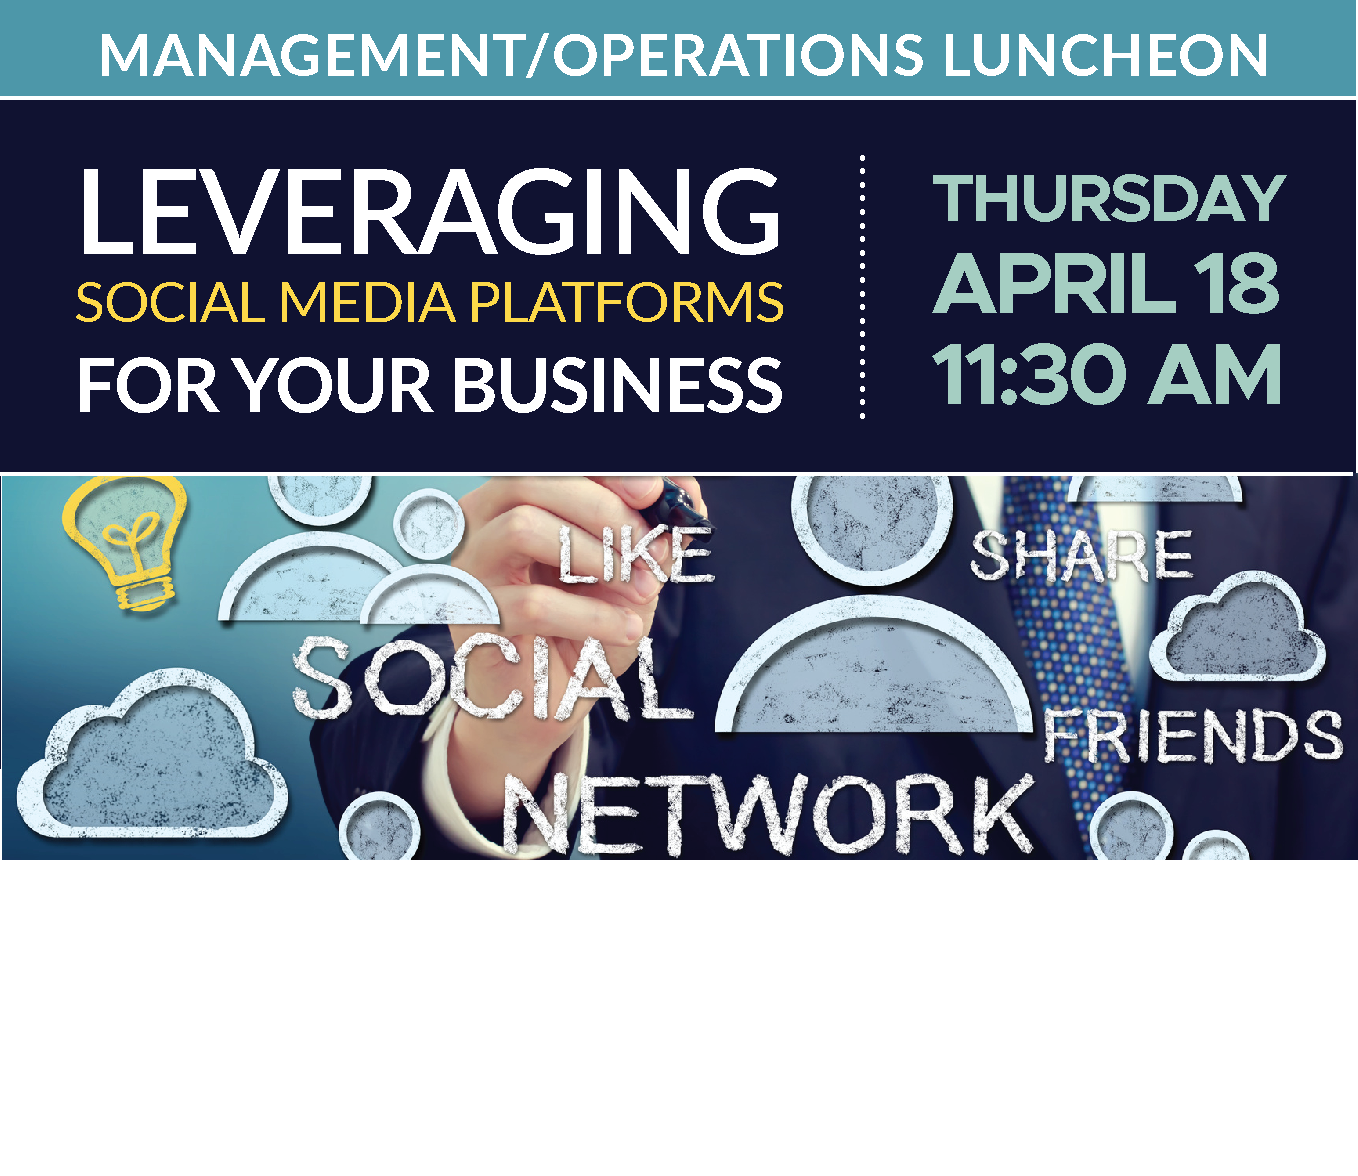 M\O Luncheon | Leveraging SOCIAL MEDIA Platforms for your Business